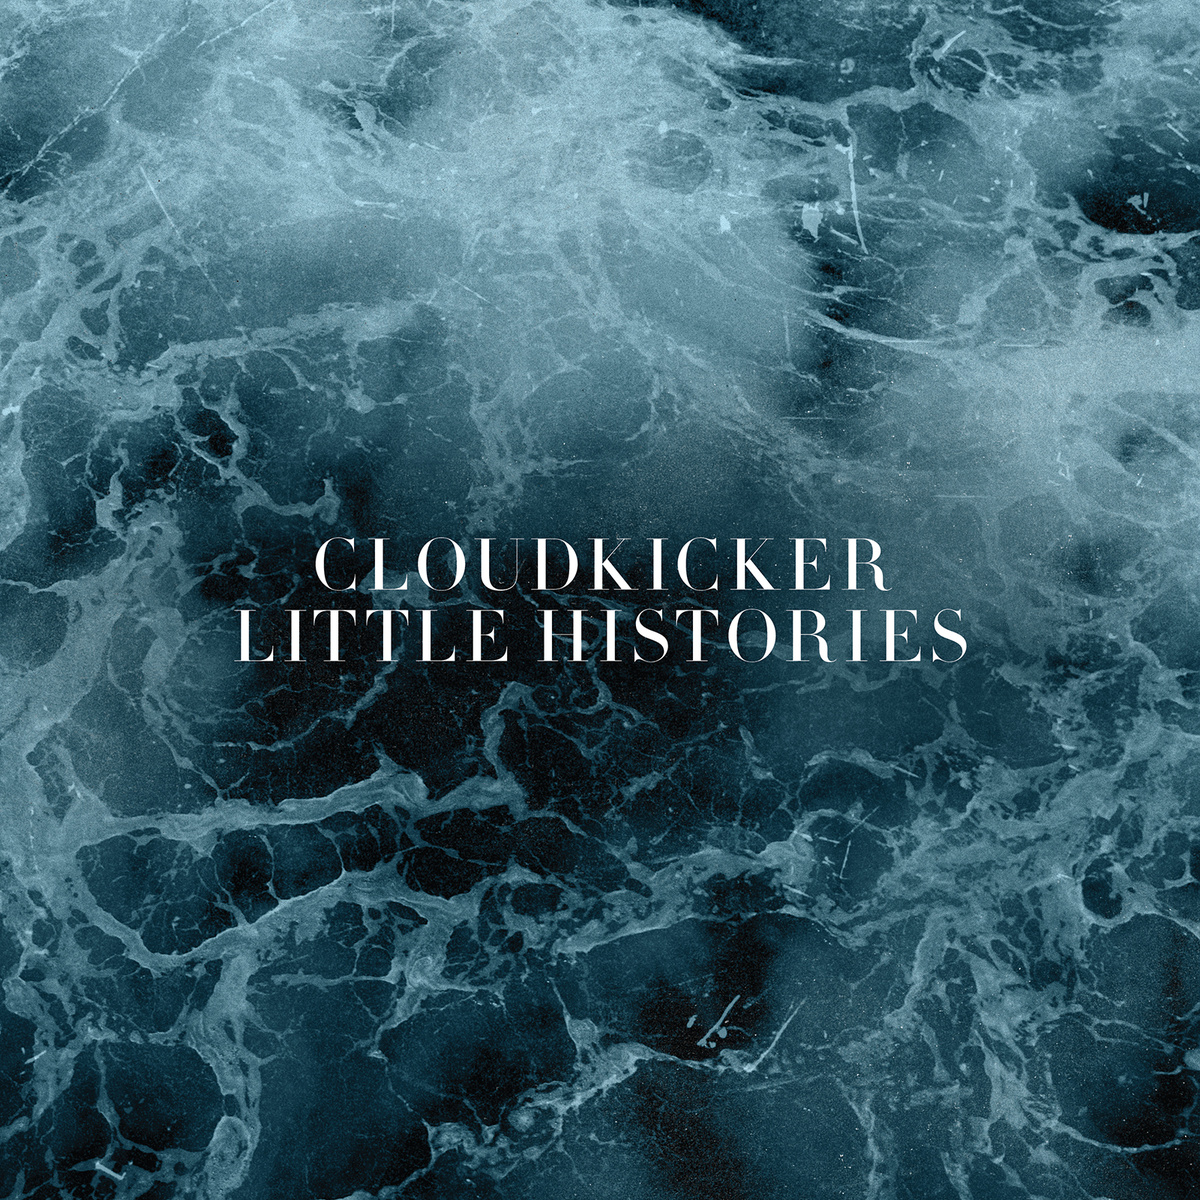 cloudkicker - little histories